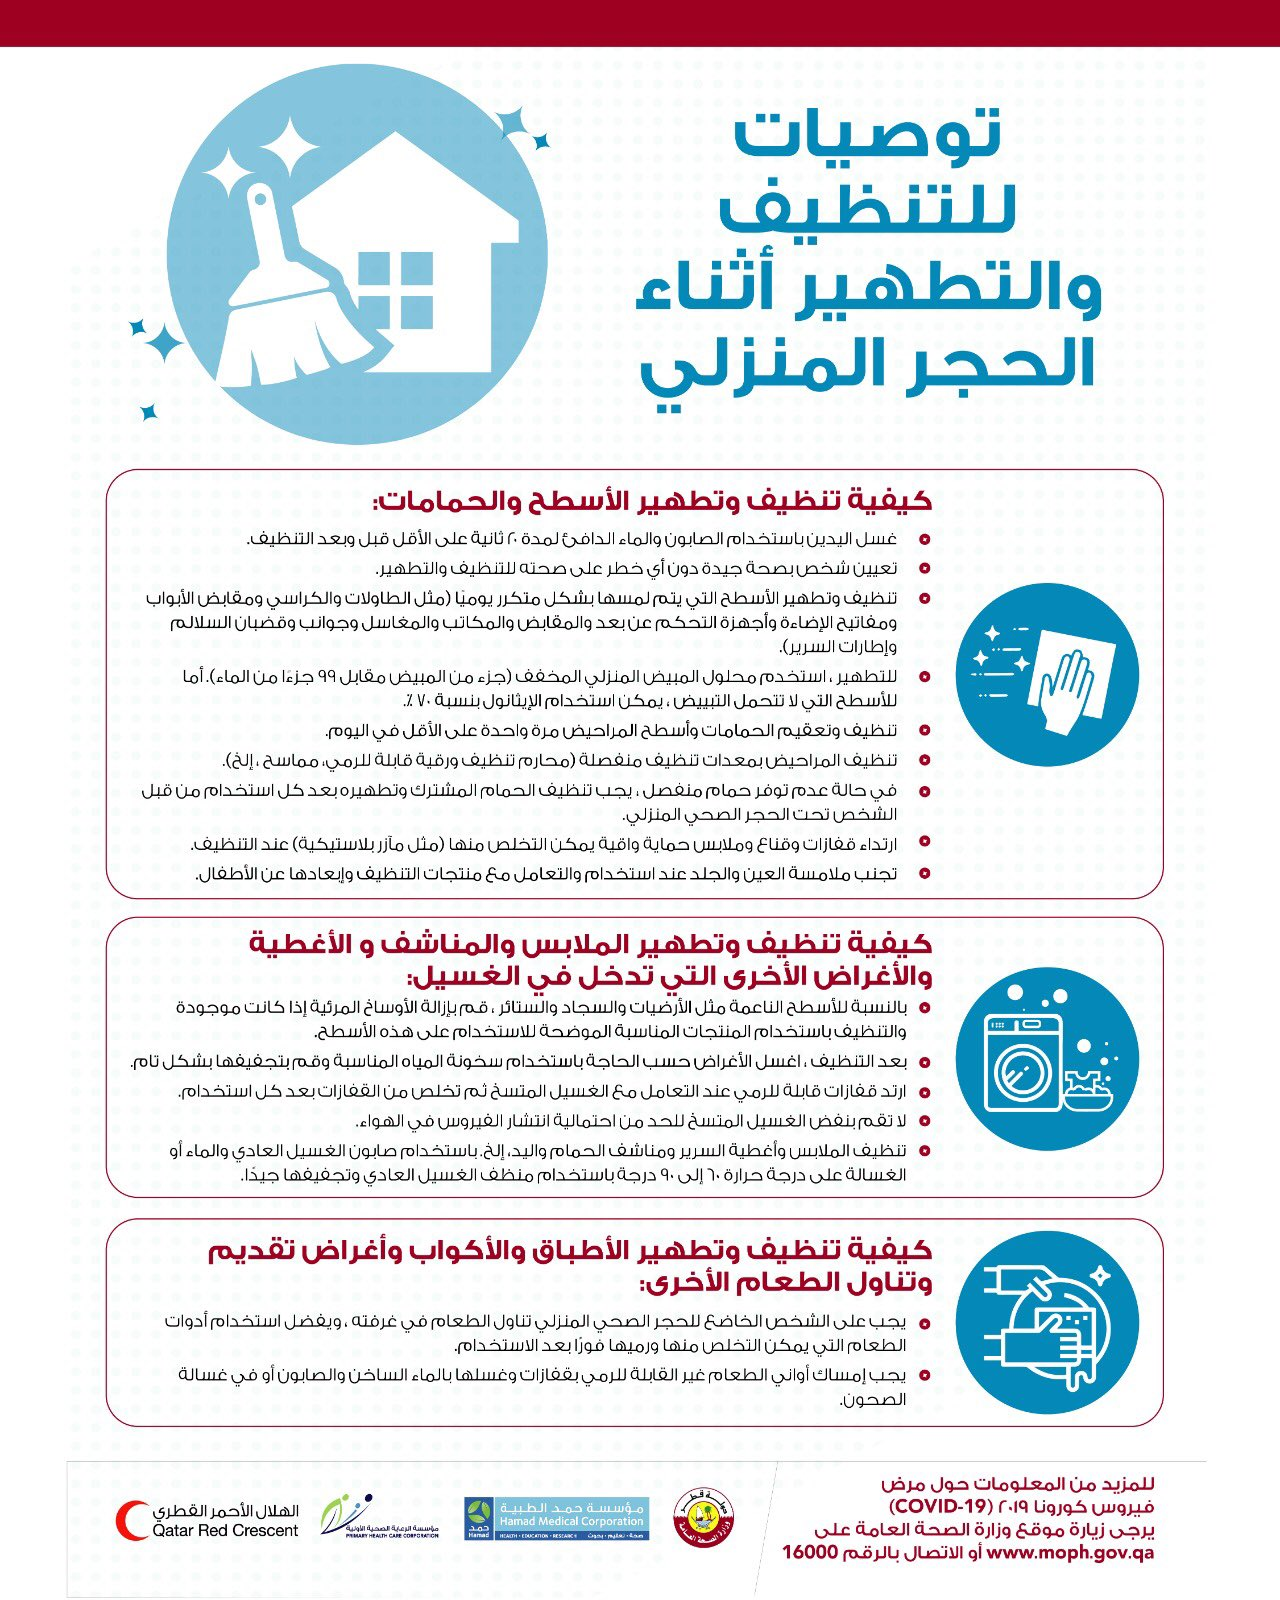 Recommendations for cleaning and disinfection while under home quarantine